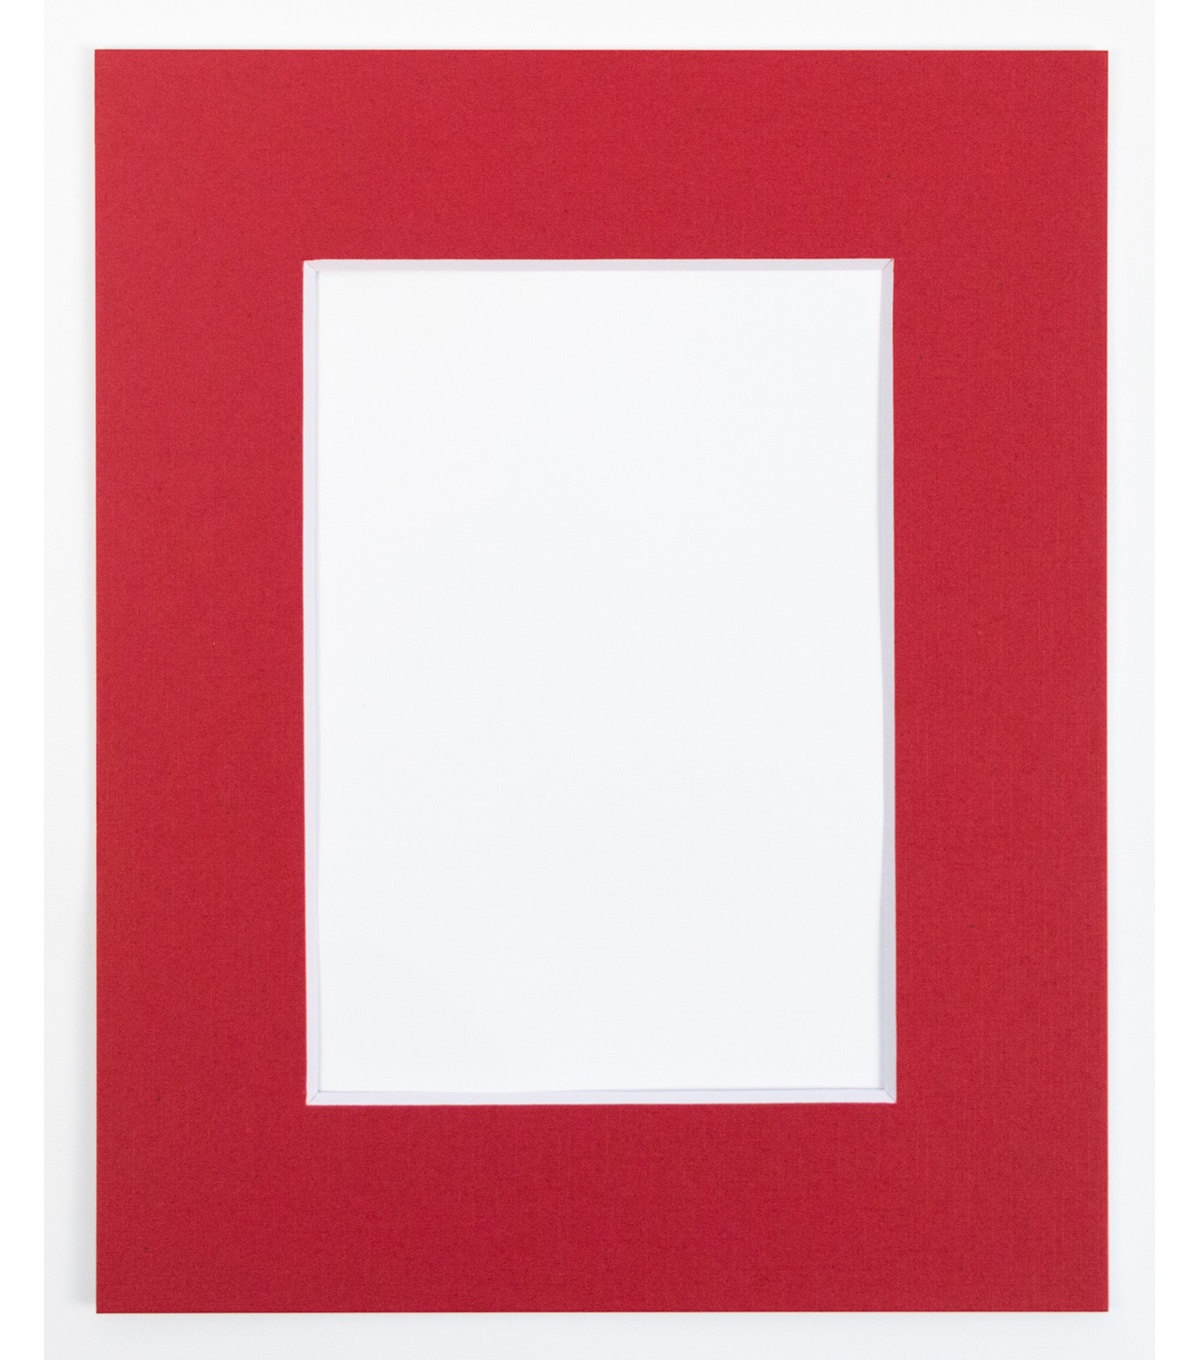 Framing Mat 8X10-Red